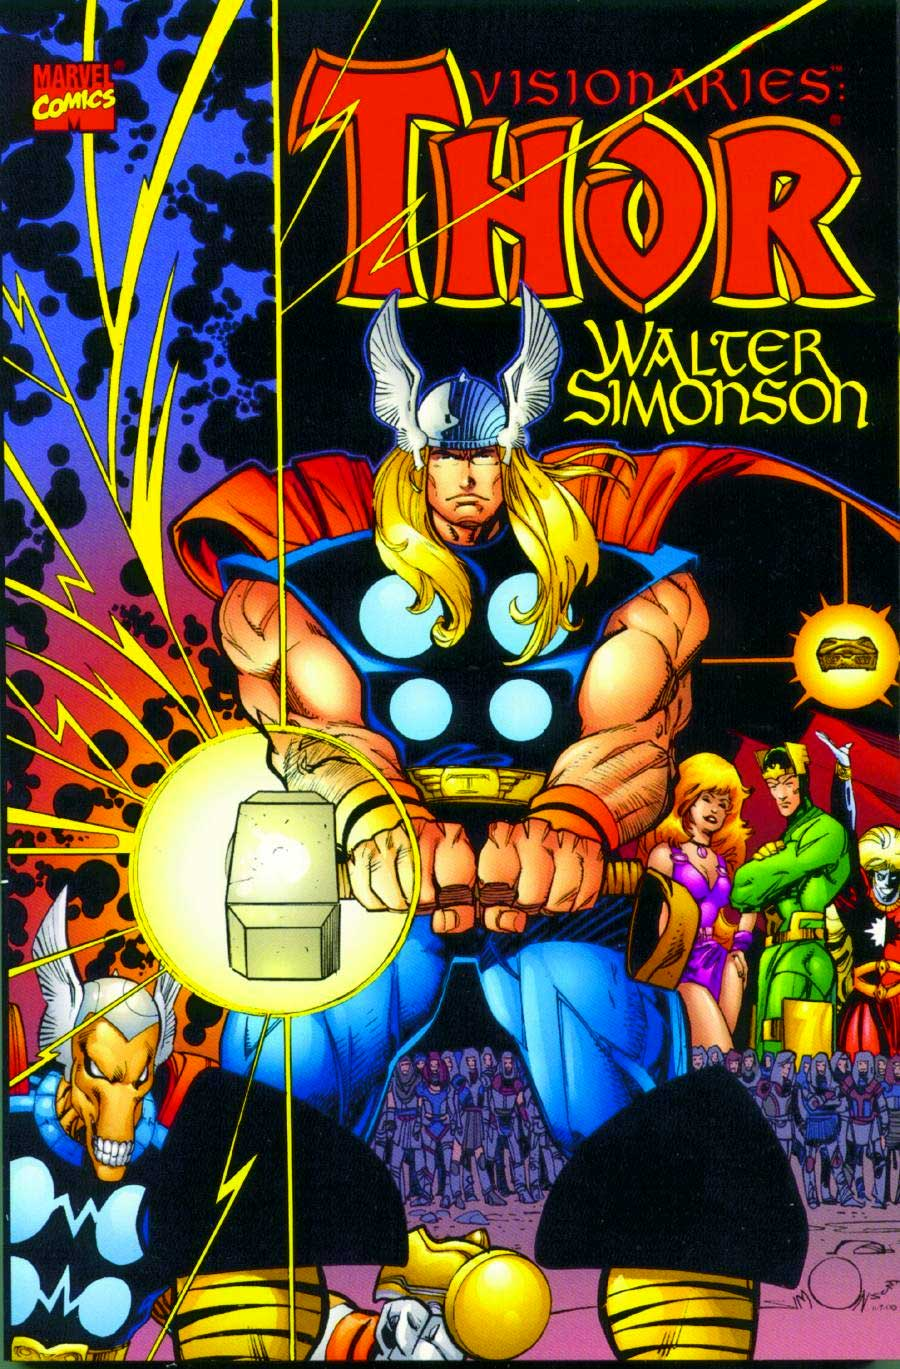 Image result for thor walt simonson